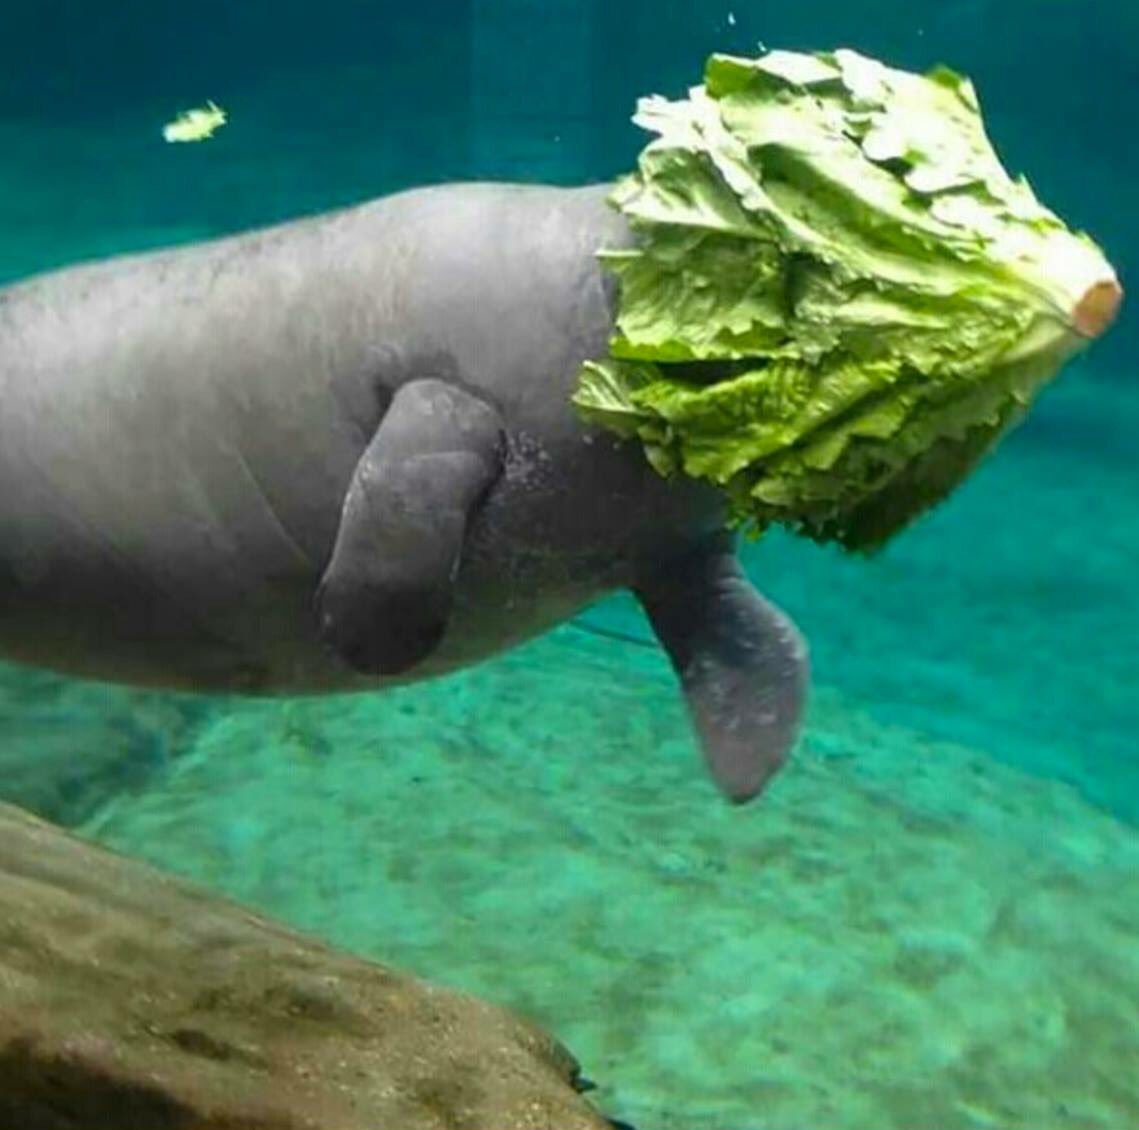 manatee failing to eat lettuce